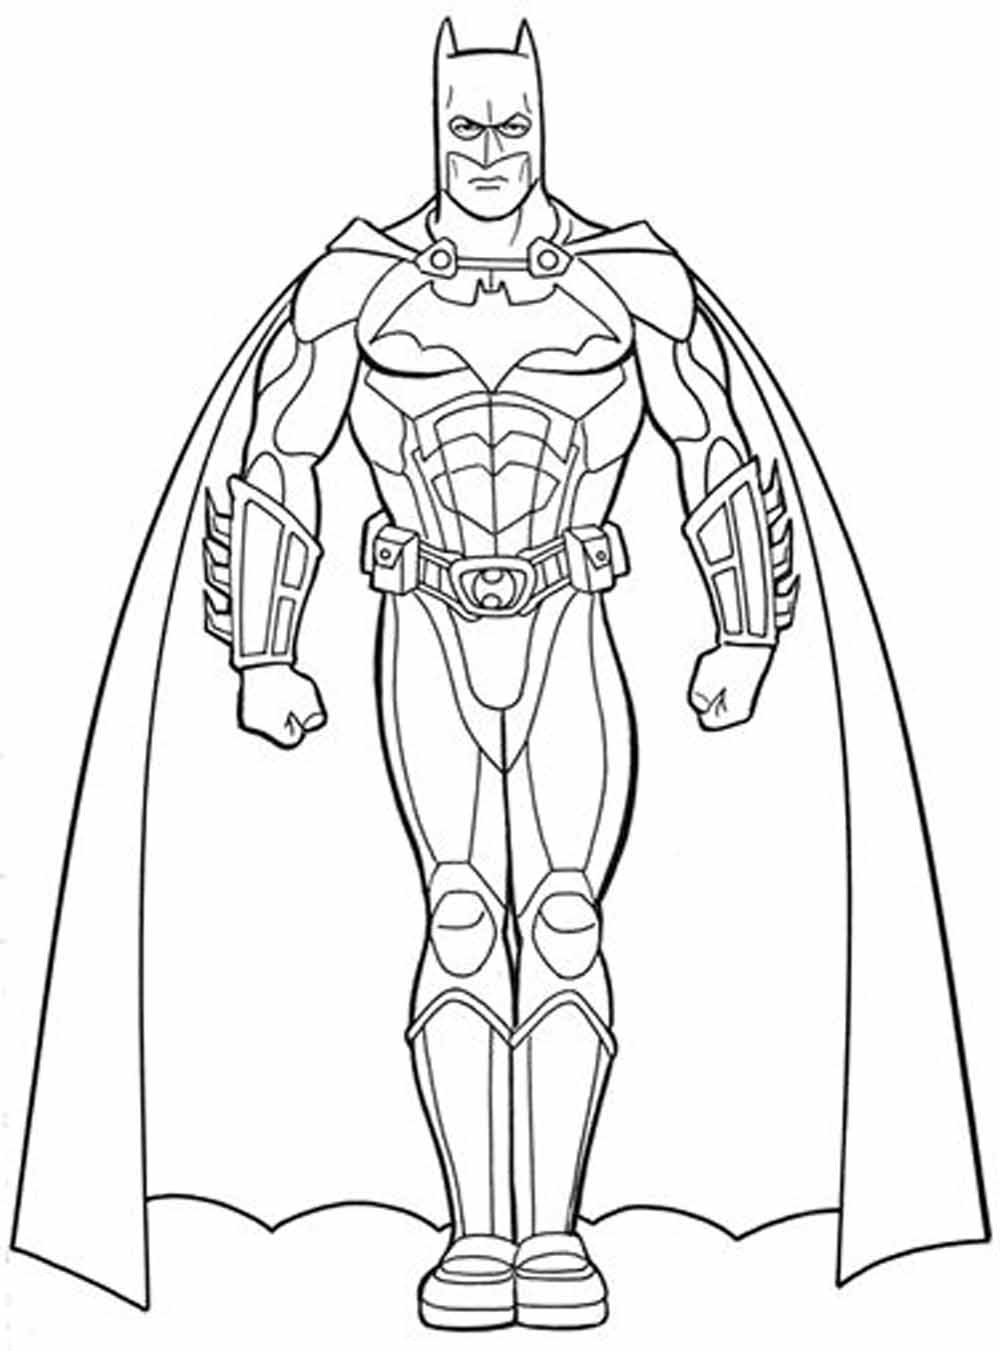 batman pictures to colour in get this printable batman coloring pages 810606 colour in batman pictures to